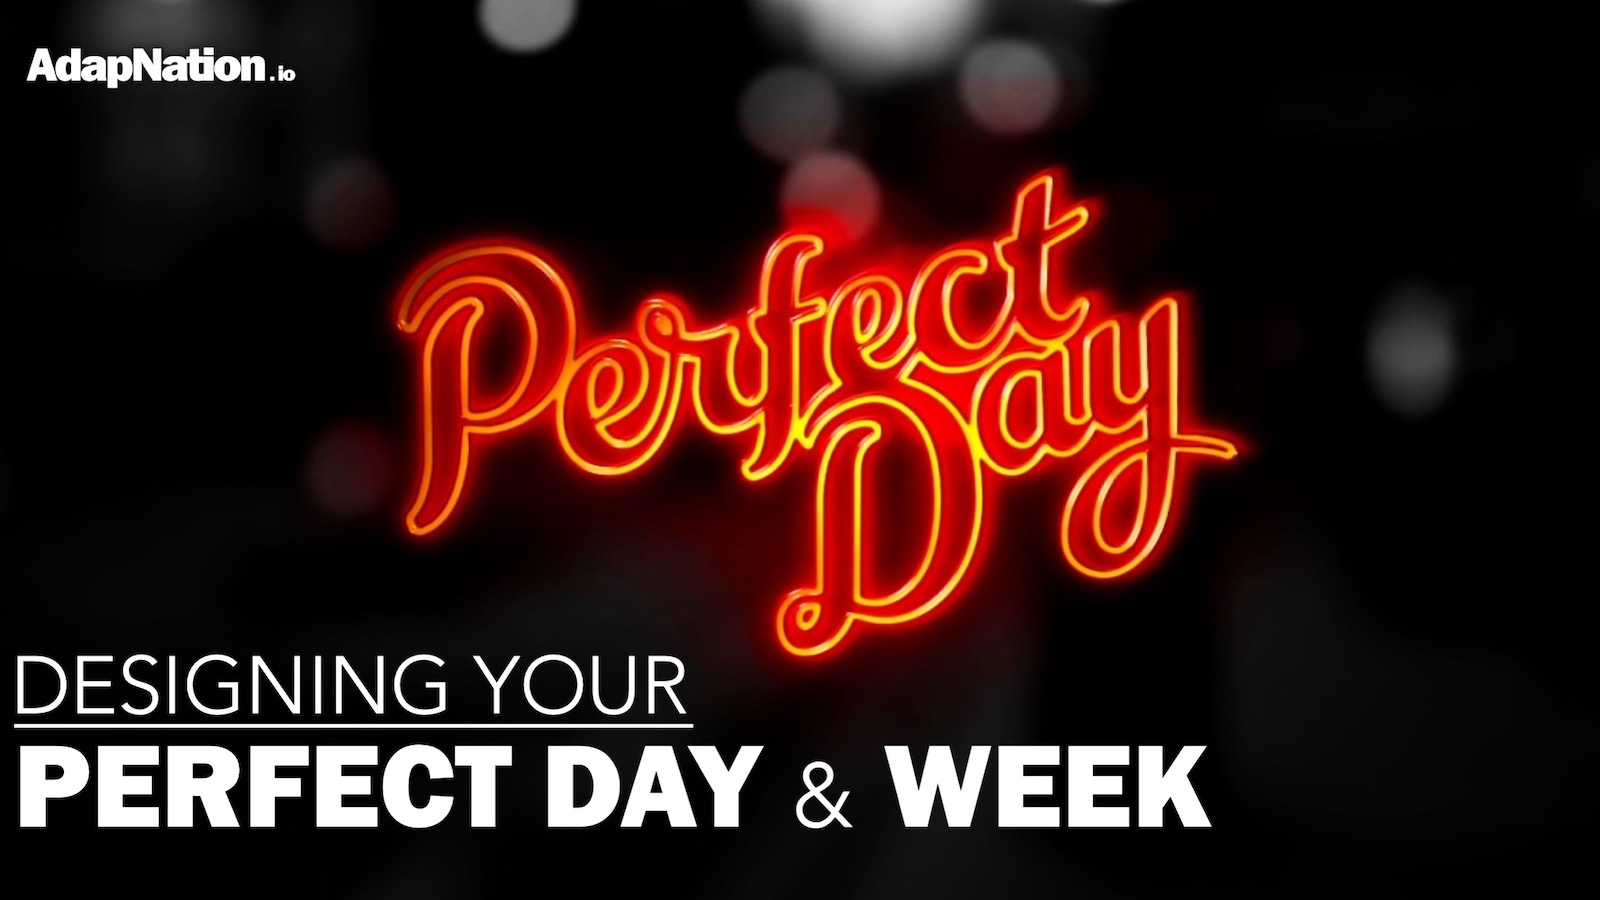 image relating to Design Your Day titled Building Your Great Working day 7 days - Why It Points